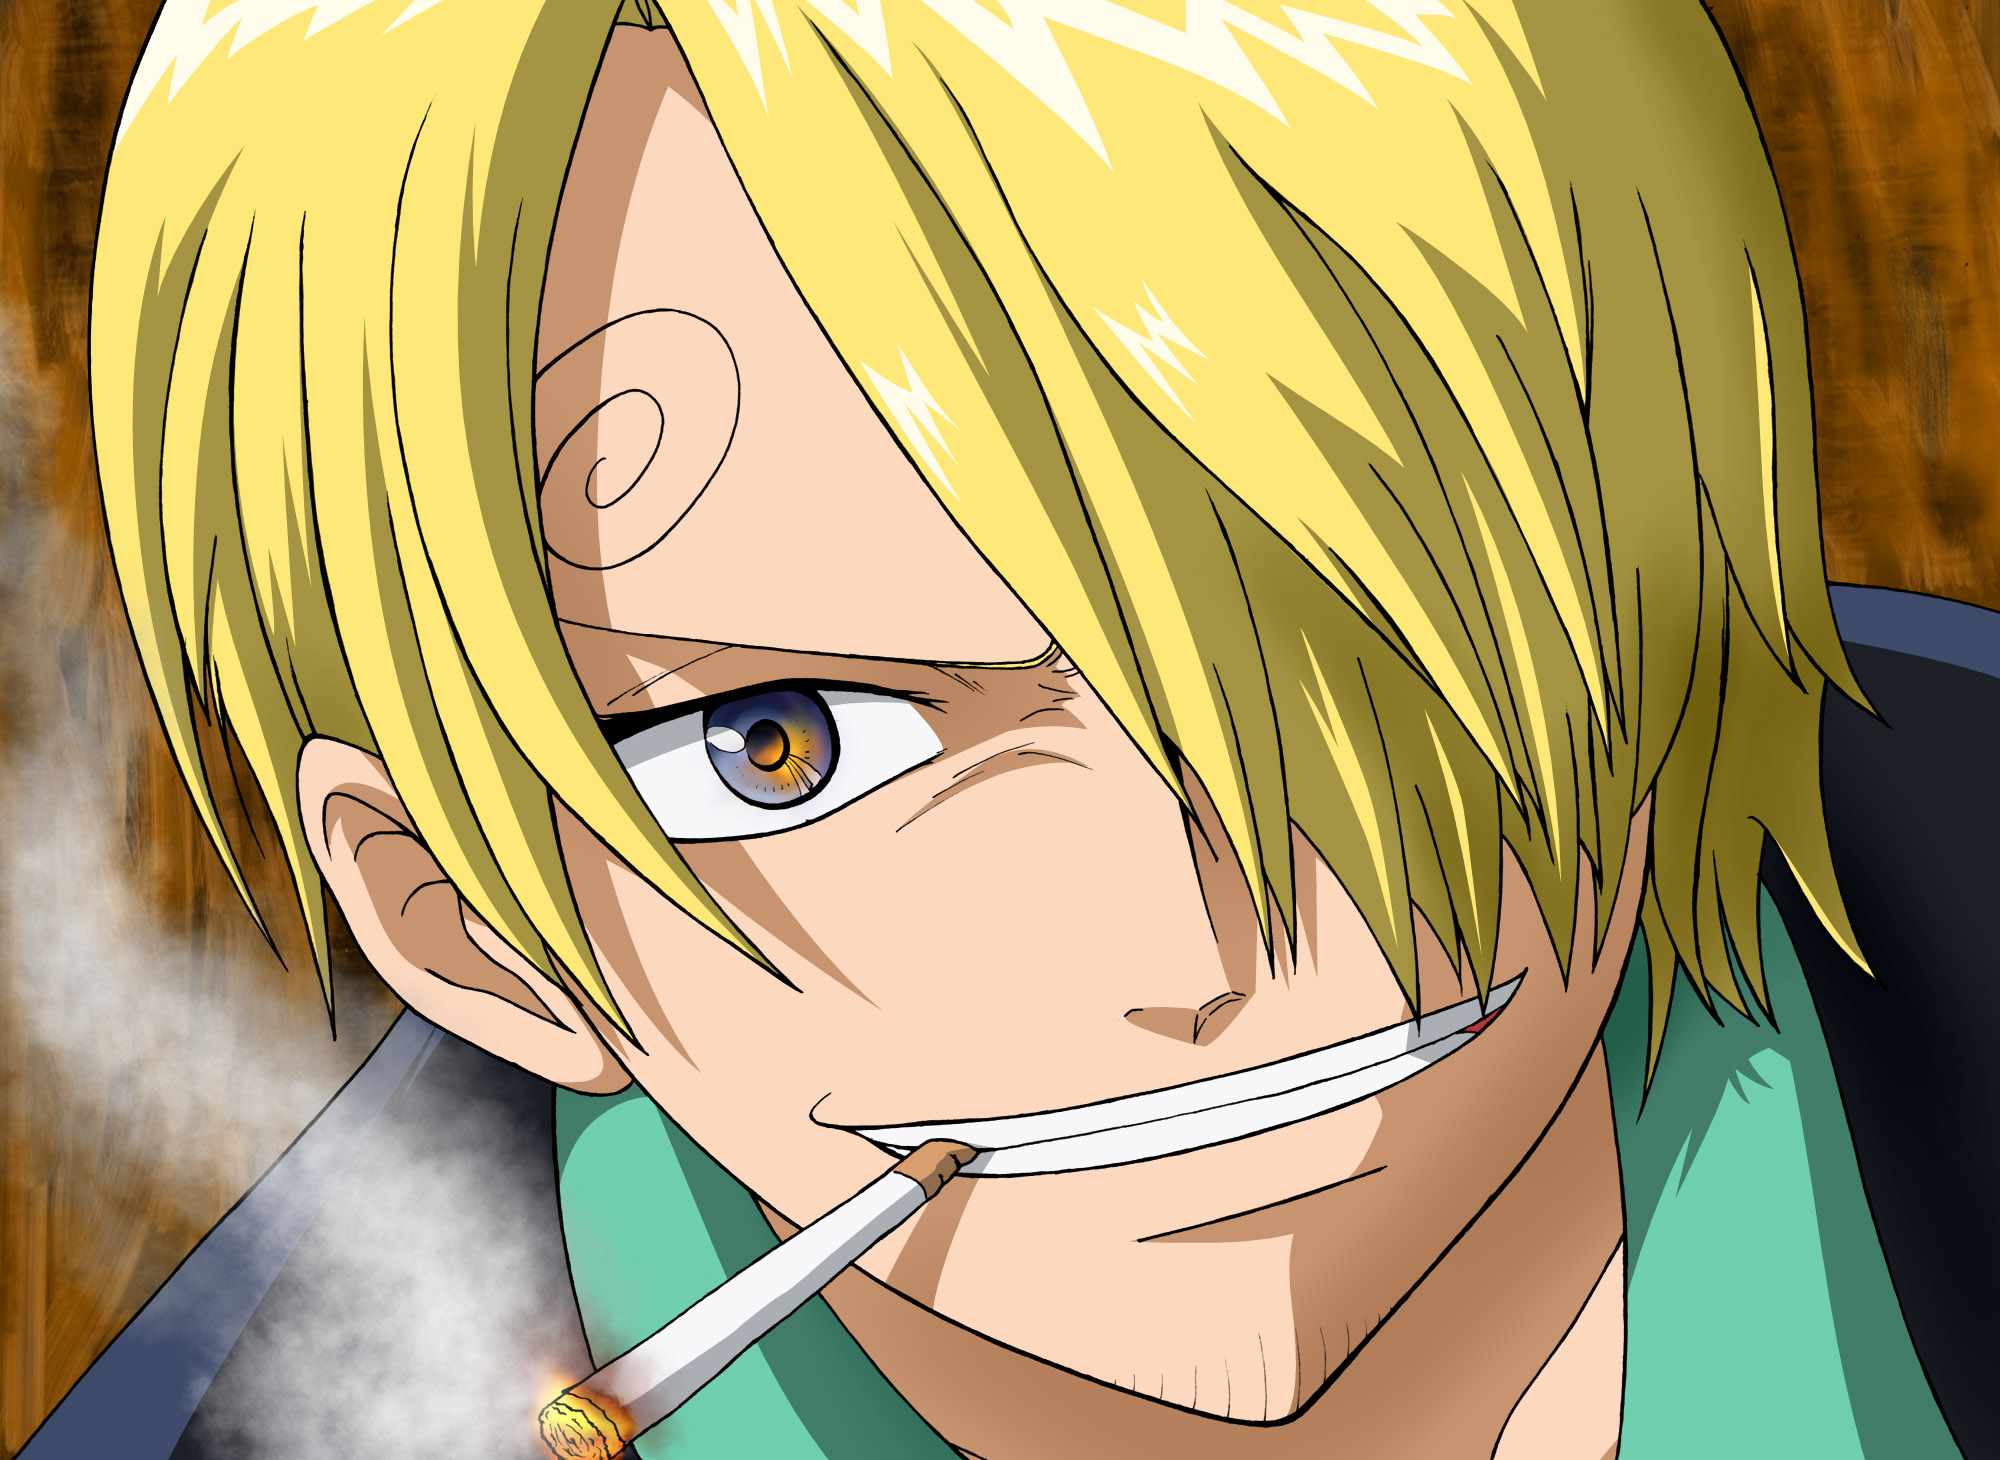 [JEU FLOOD] Je veux........ - Page 2 My_avatar__Sanji_Kun_colored_by_KaenDD